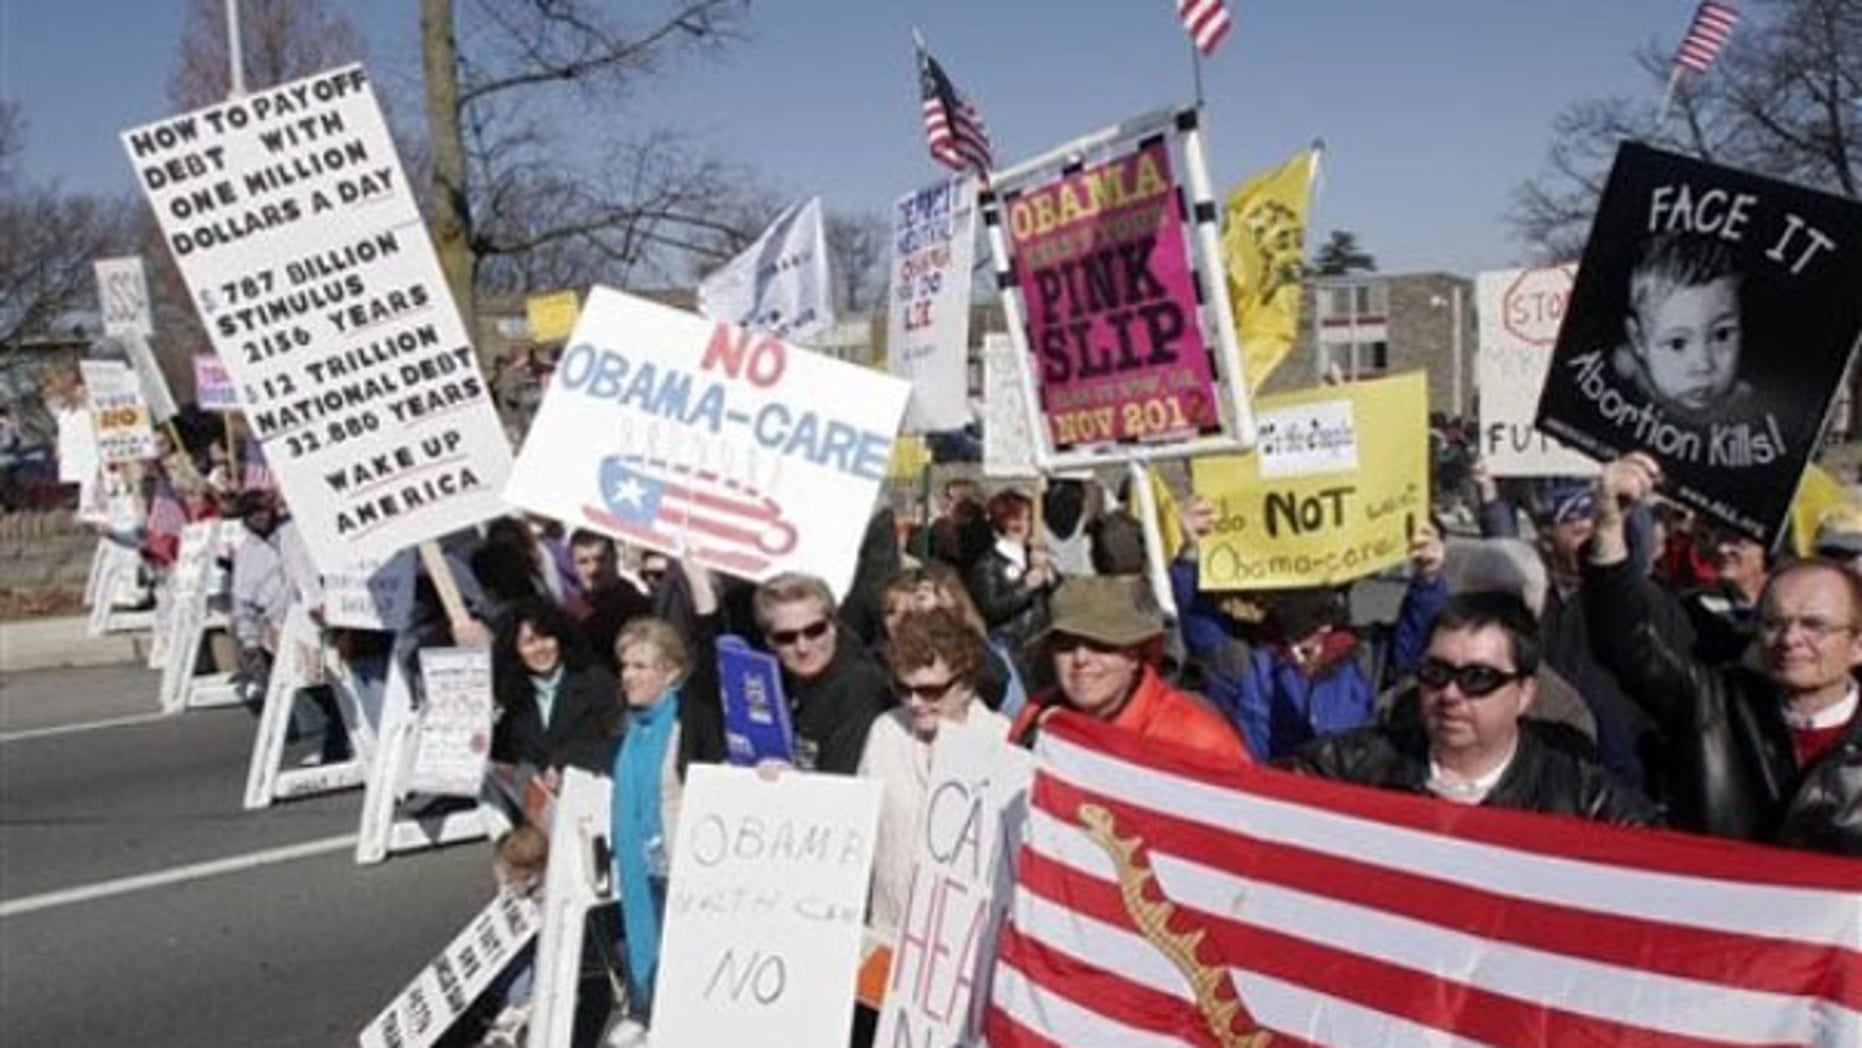 Monday: Tea Party supporters demonstrate before the arrival of President Obama in Glenside, Pa. (AP Photo)